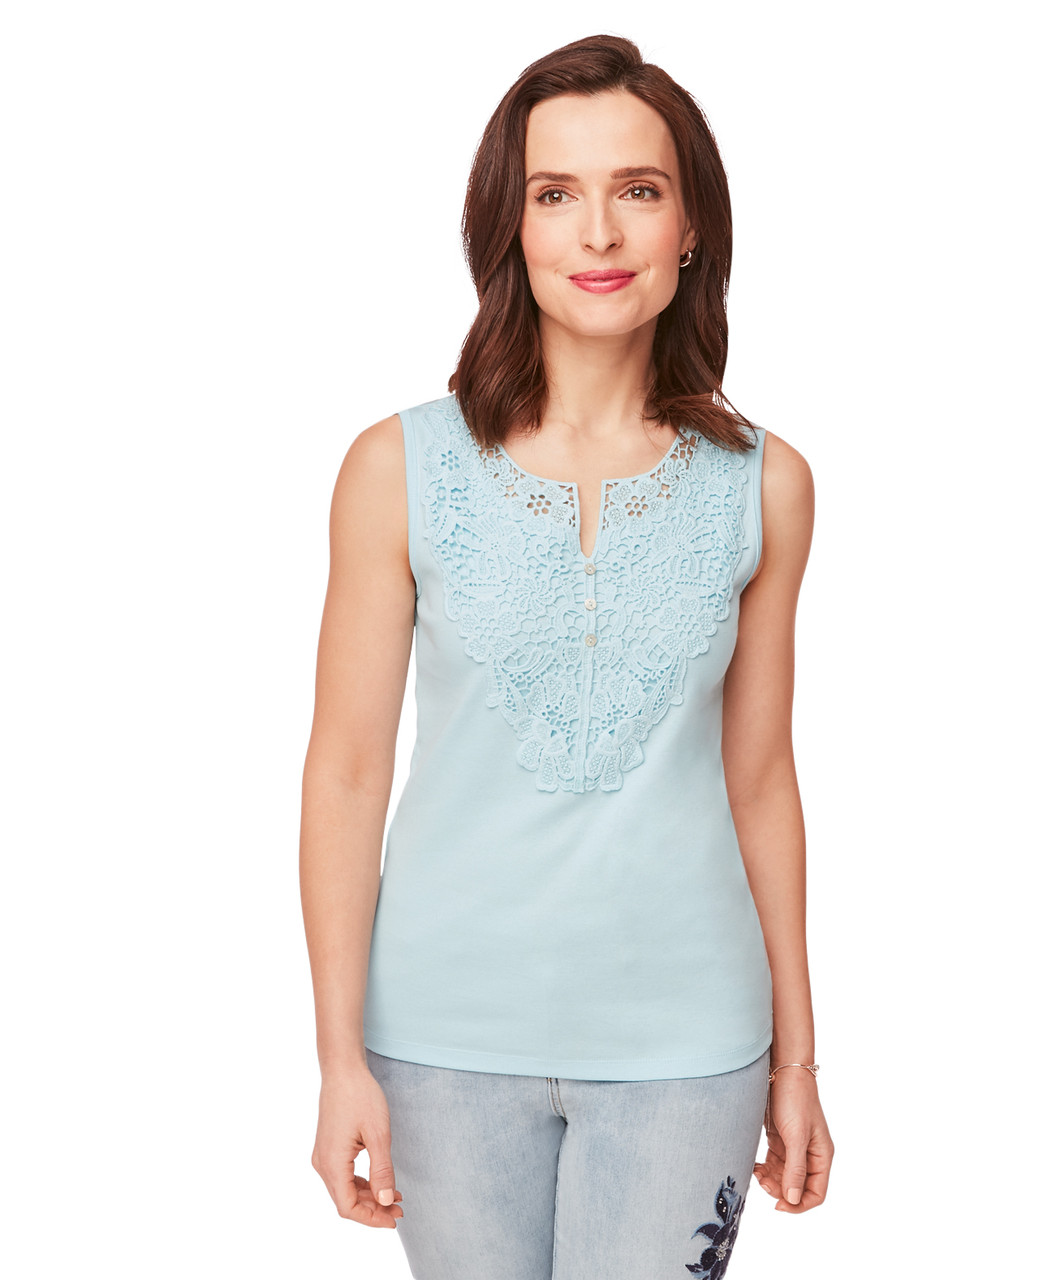 538d82dd236069 Aqua Foam Sleeveless Lace Top for Women | Northern Reflections